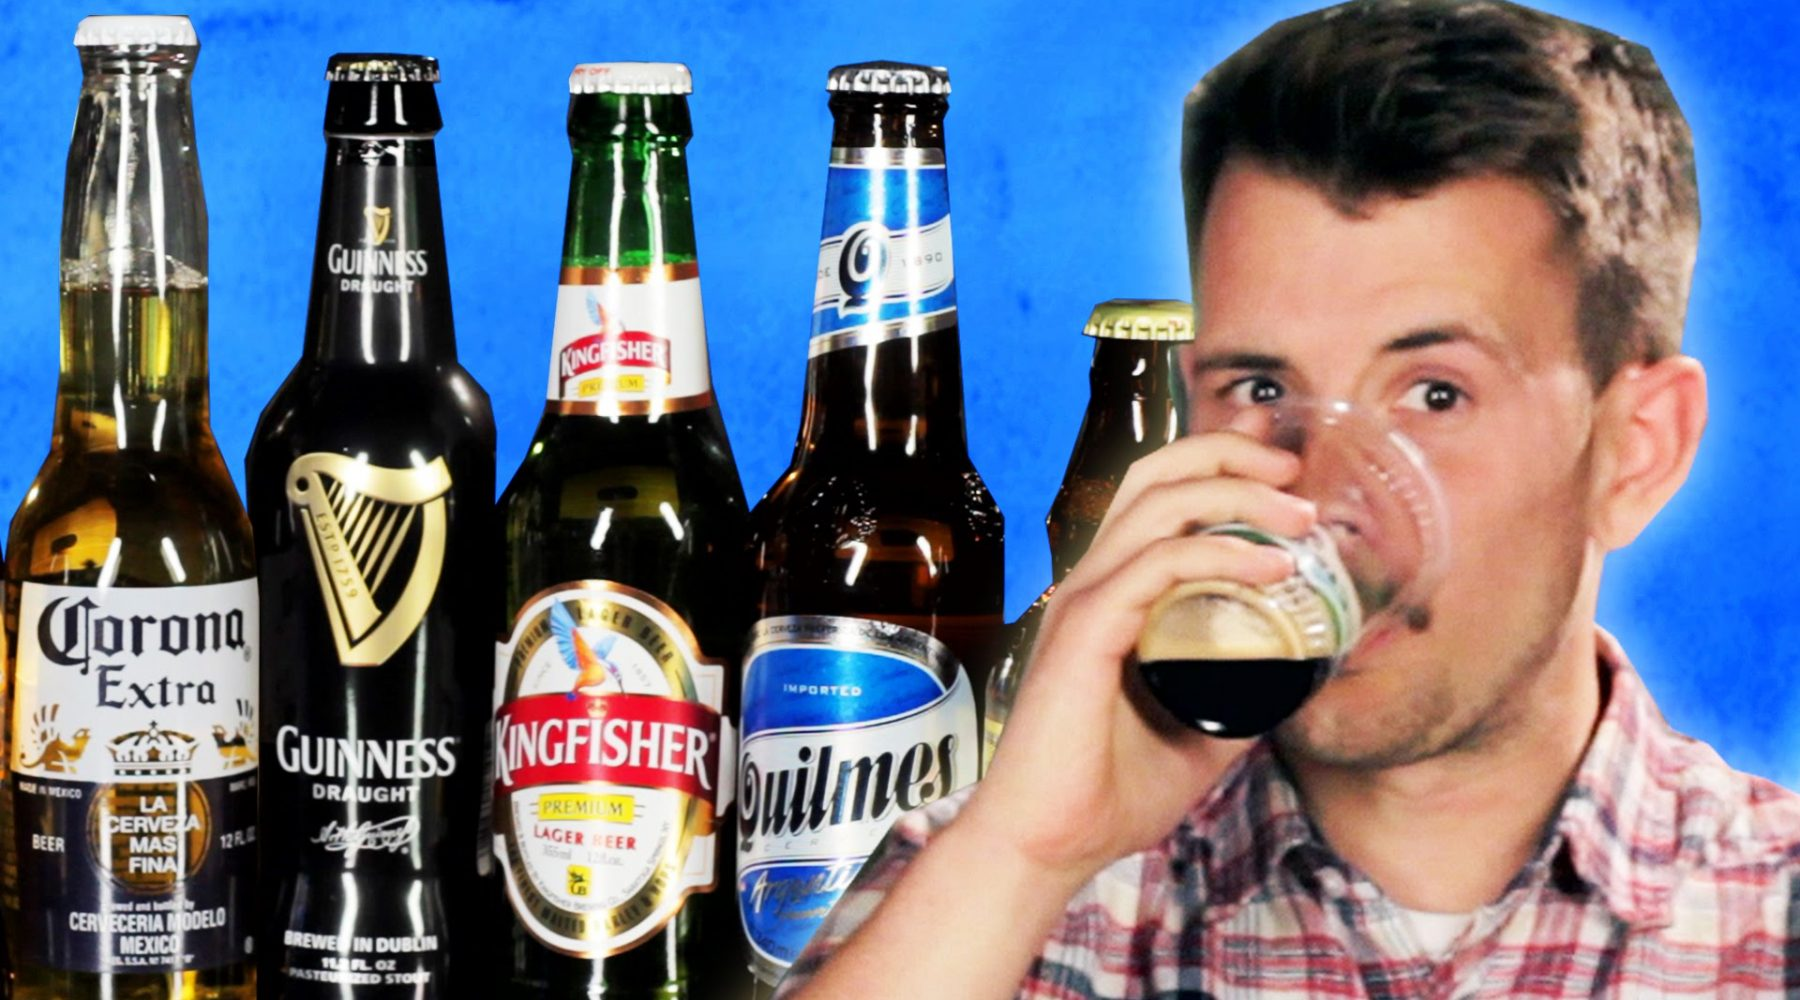 VIDEO: People Try Popular Beer From Around The World